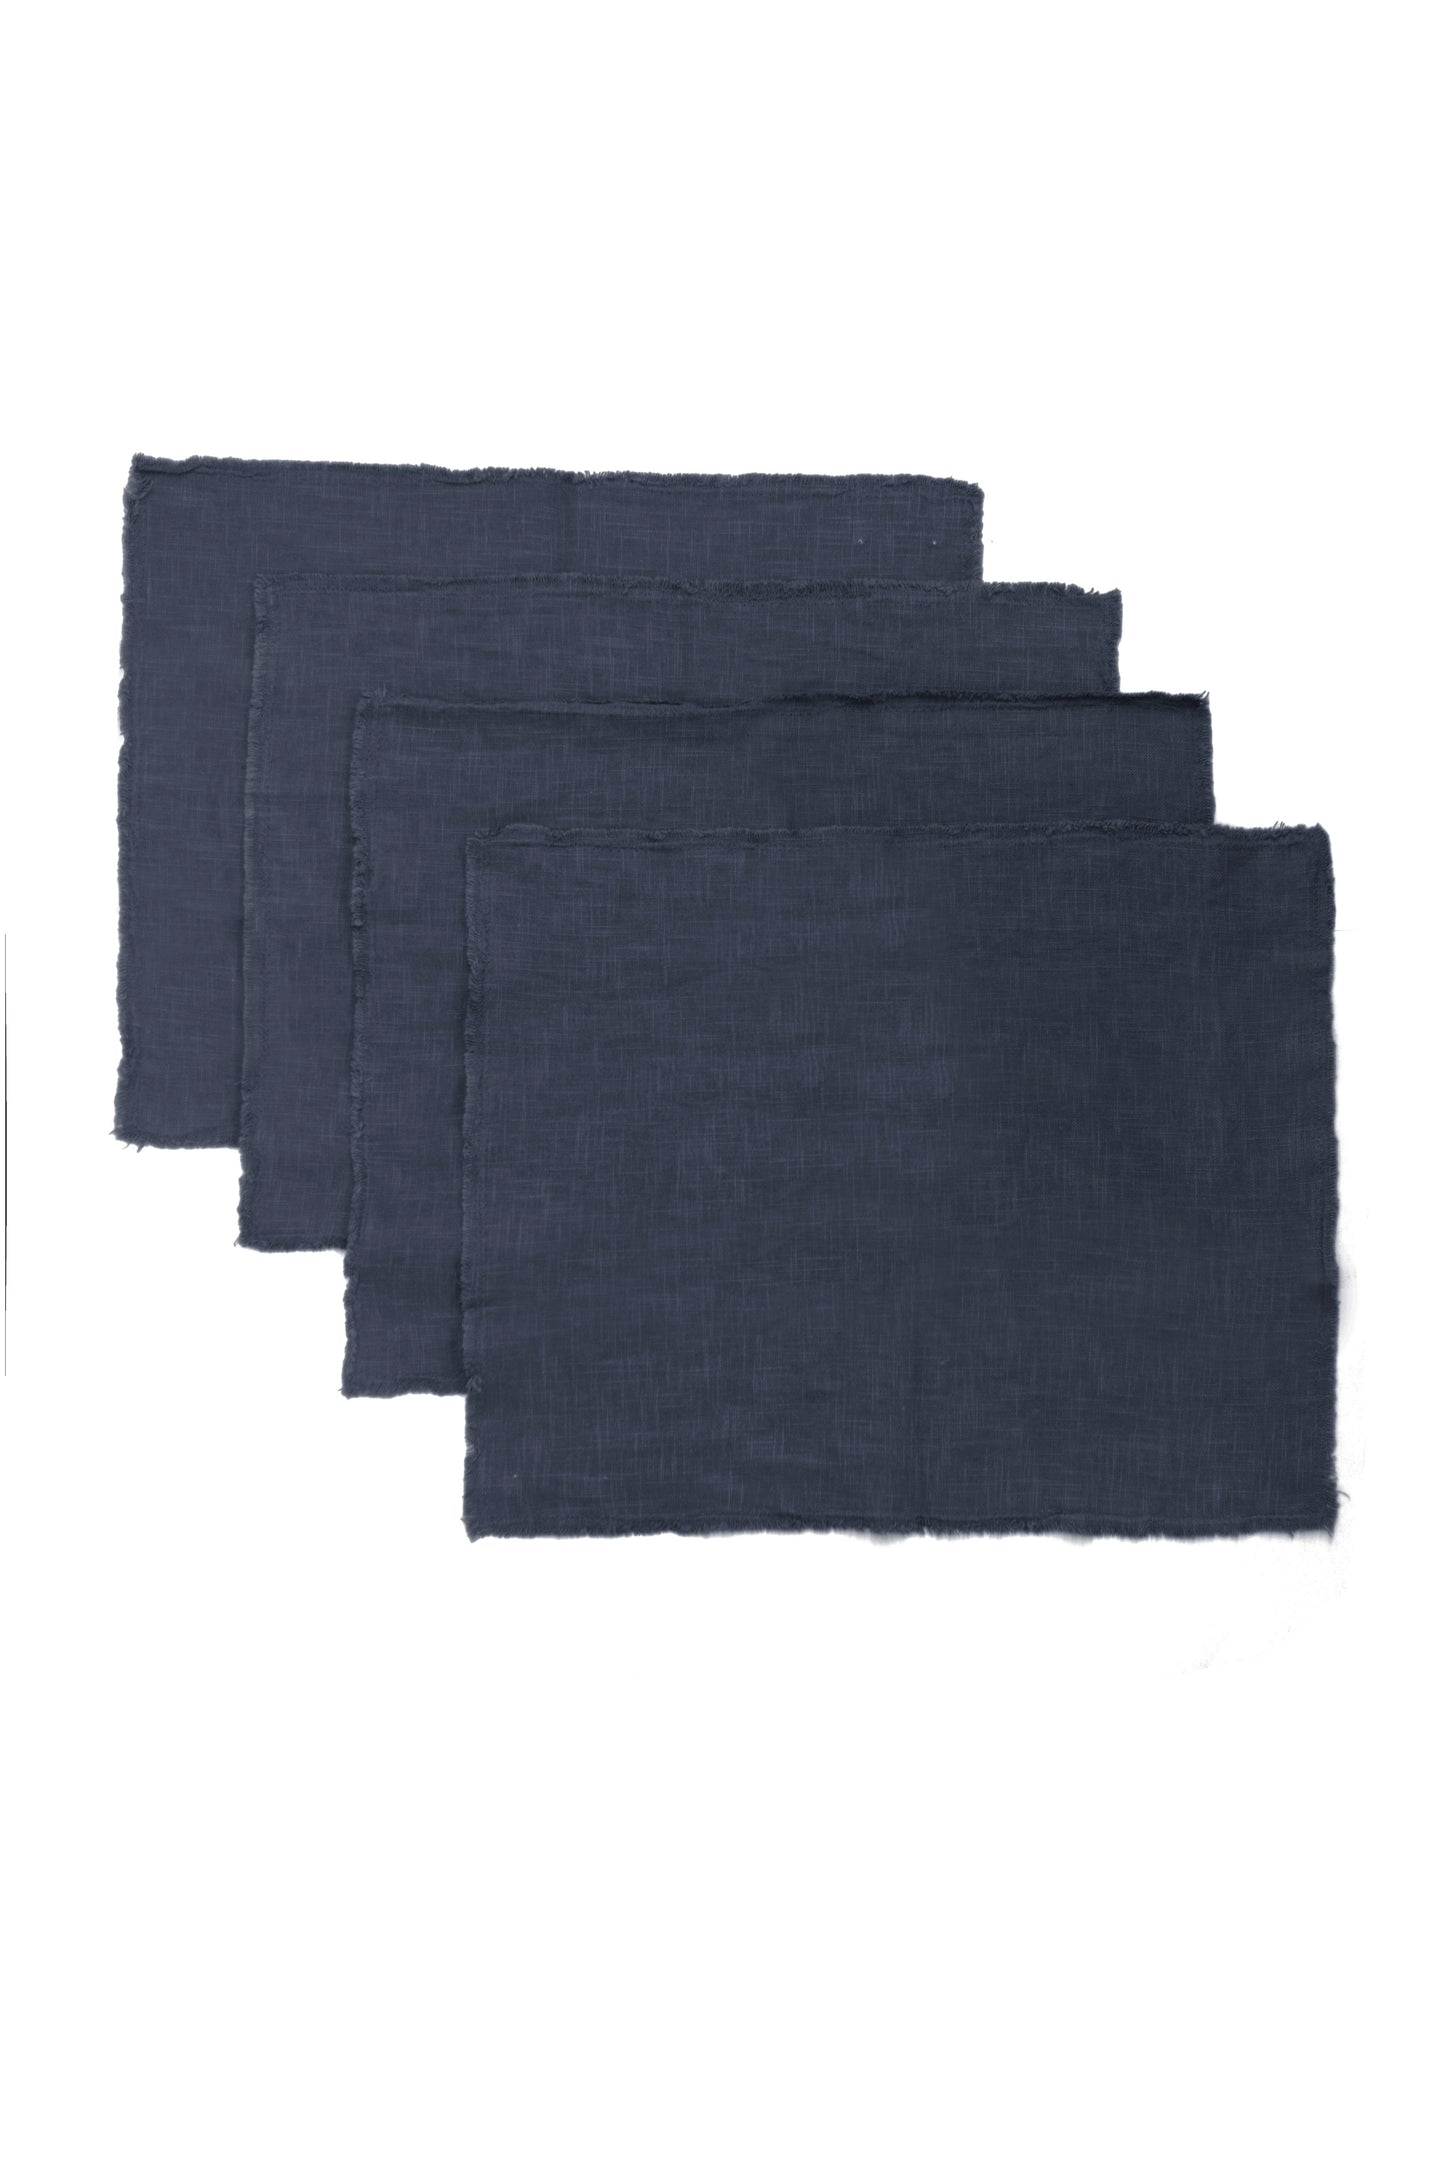 GIANNETTI INDIGO LINEN PLACEMATS (SET OF 4)